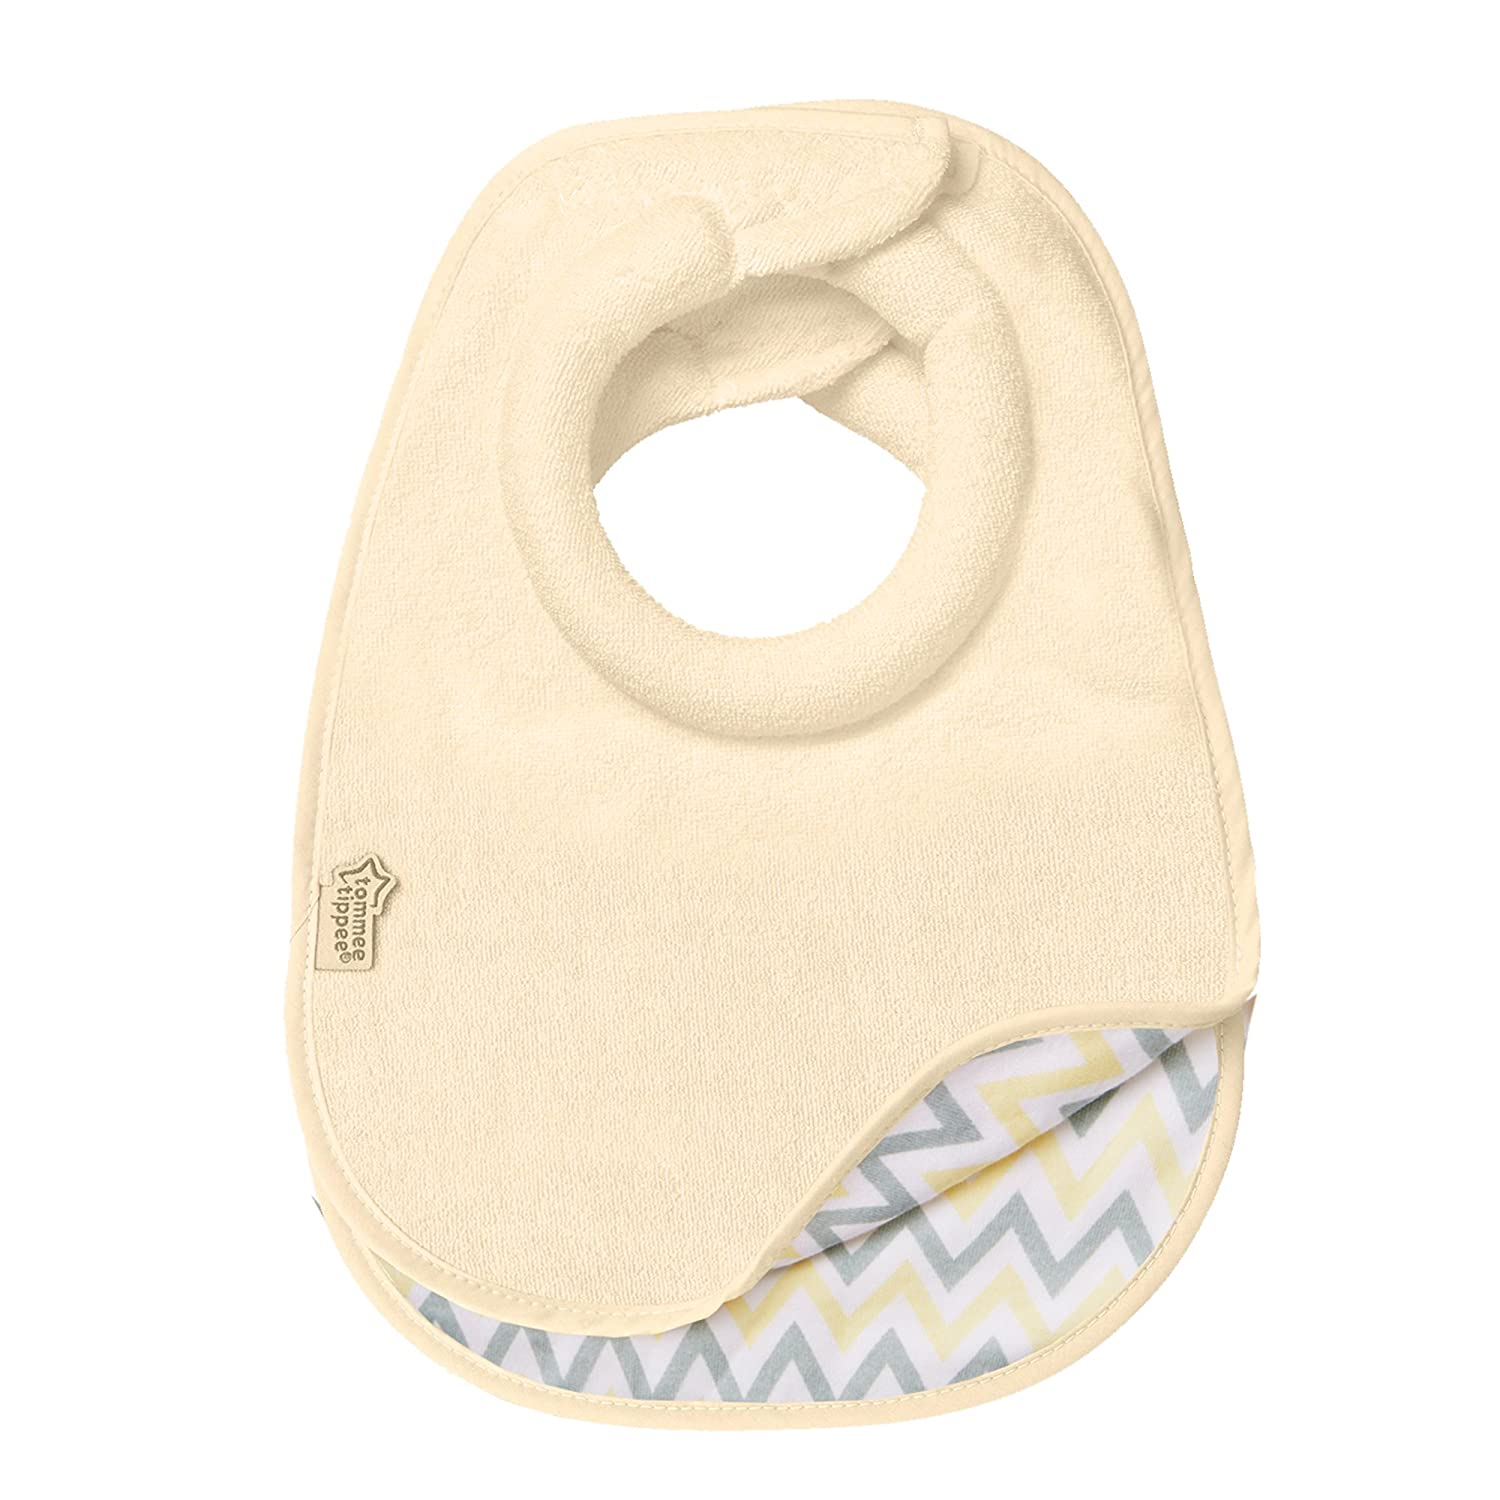 Tommee Tippee Closer to Nature Comfi-Neck Reversible Soft Baby Bib with Padded Collar, 0+ Months - Cream Chevron, 2 Count